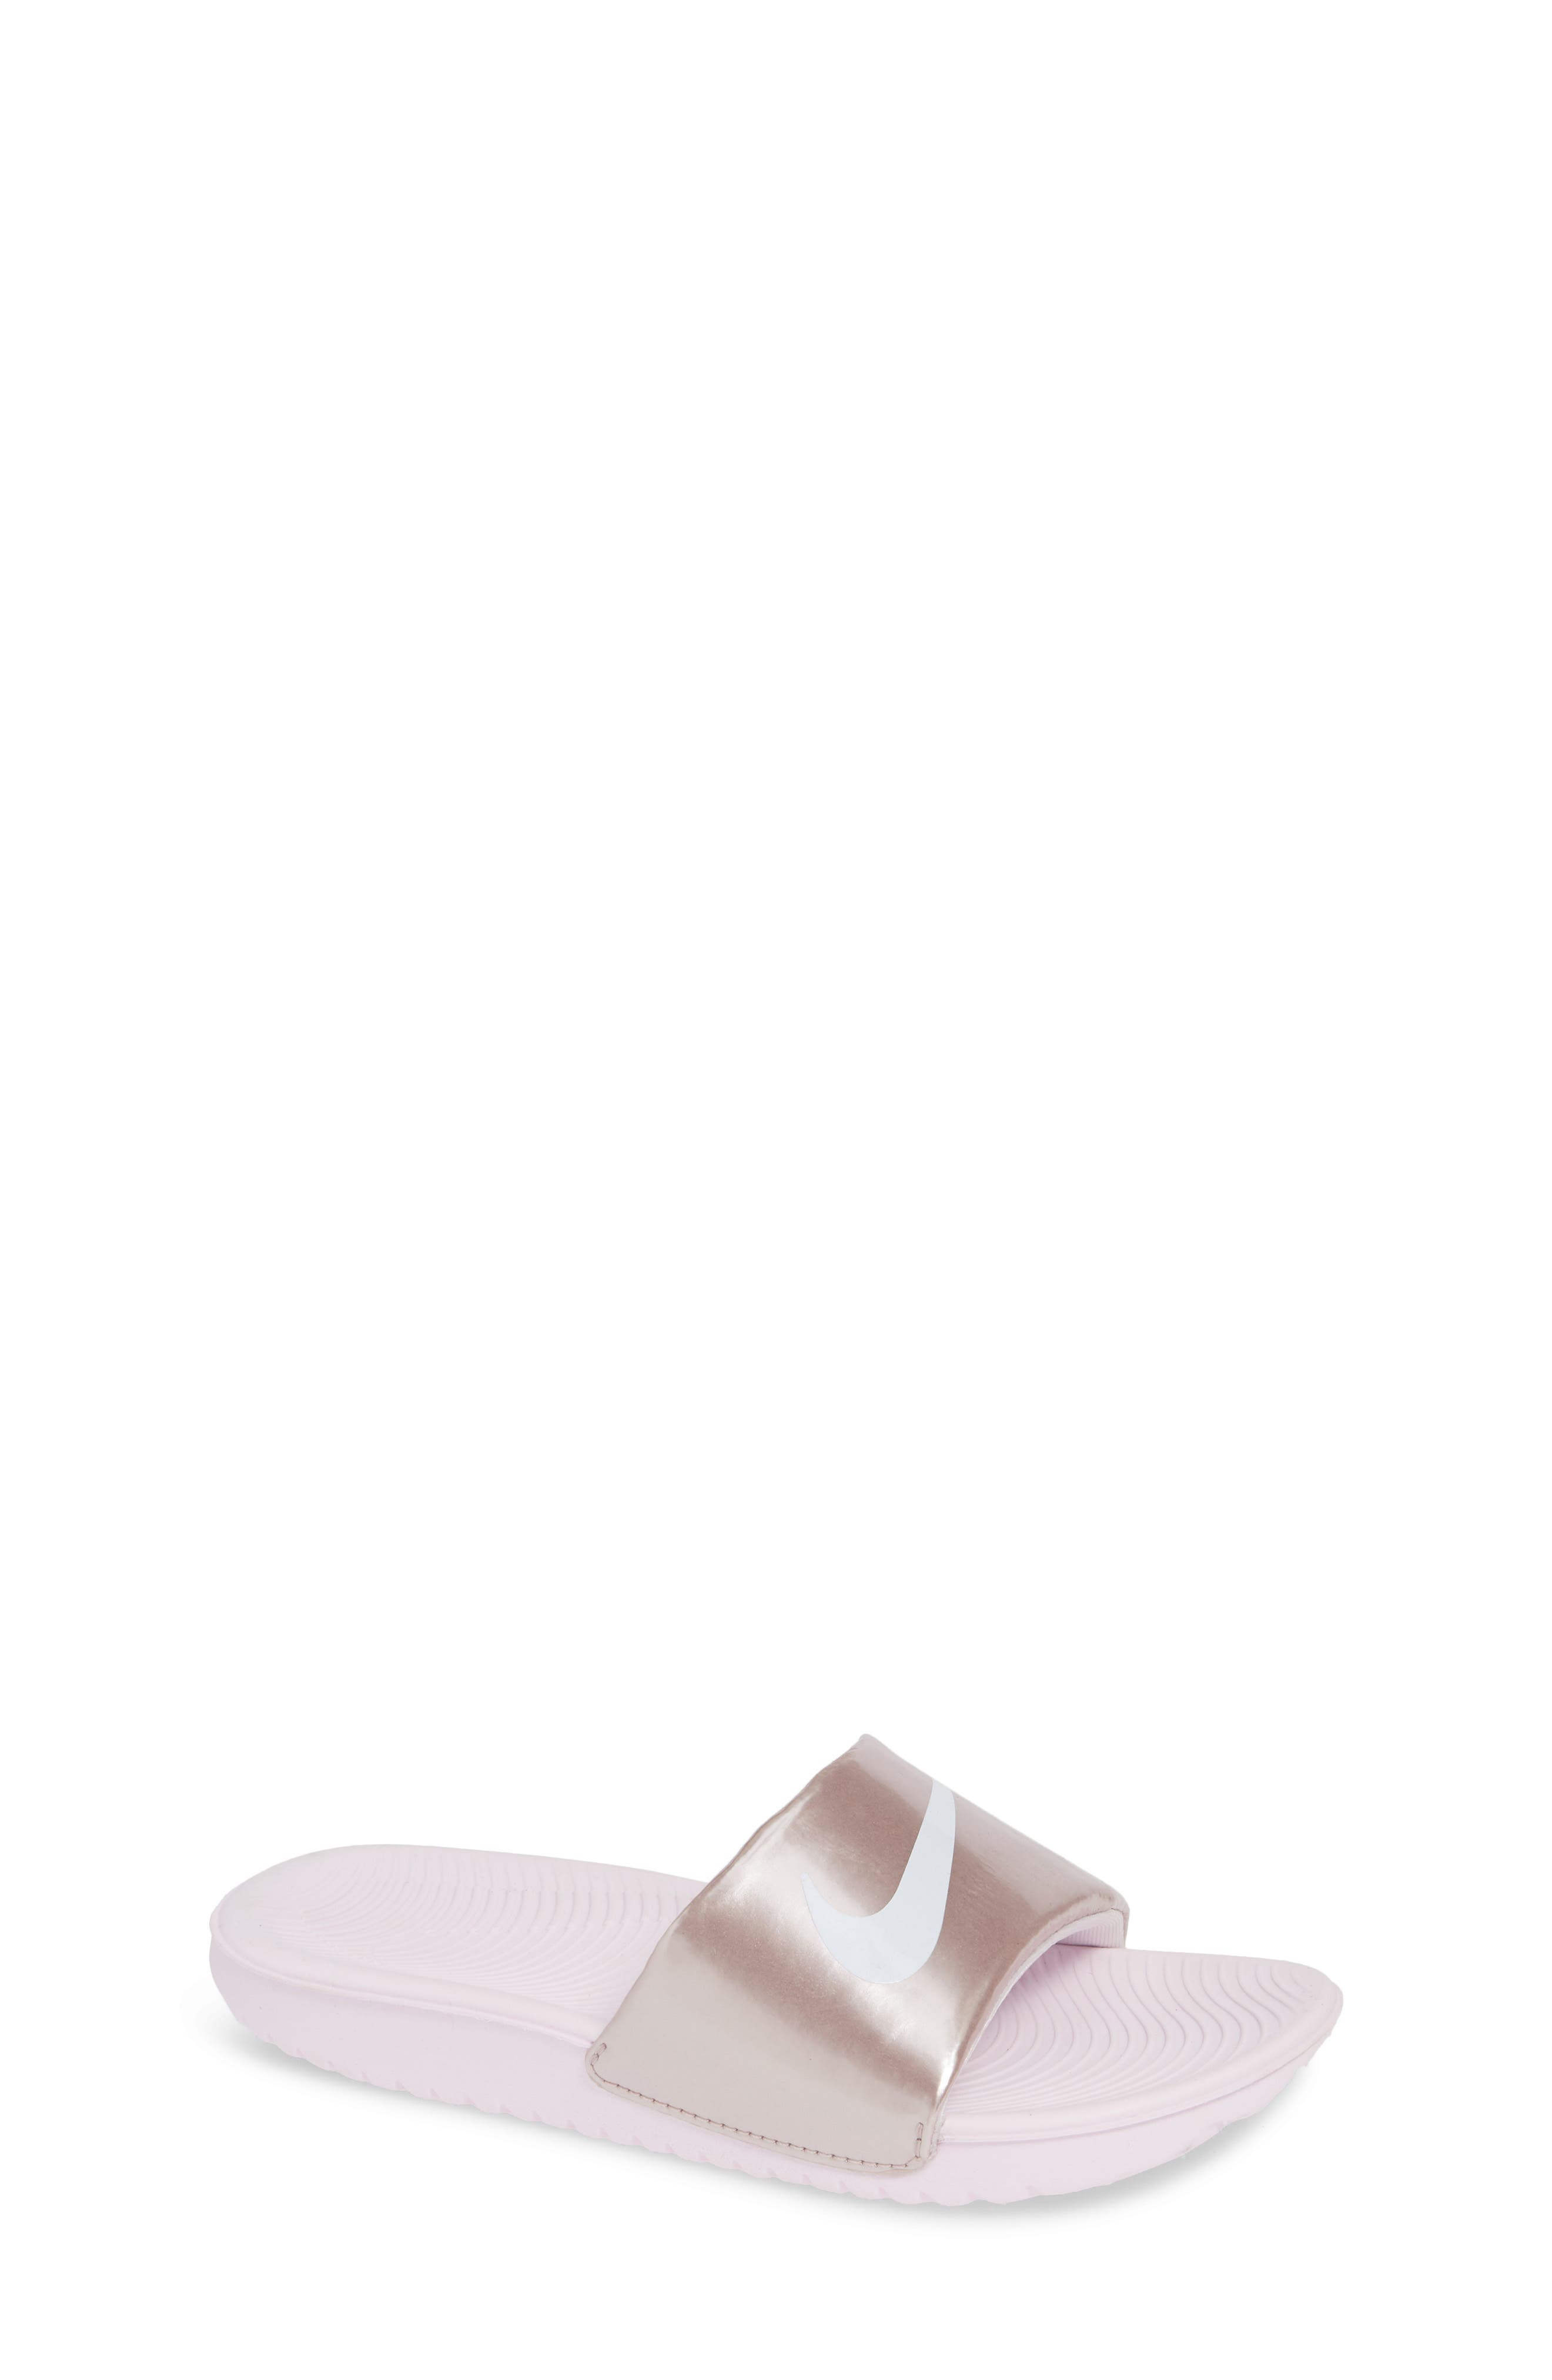 NIKE, 'Kawa' Slide Sandal, Main thumbnail 1, color, ARCTIC PINK/ WHITE/ RED BRONZE